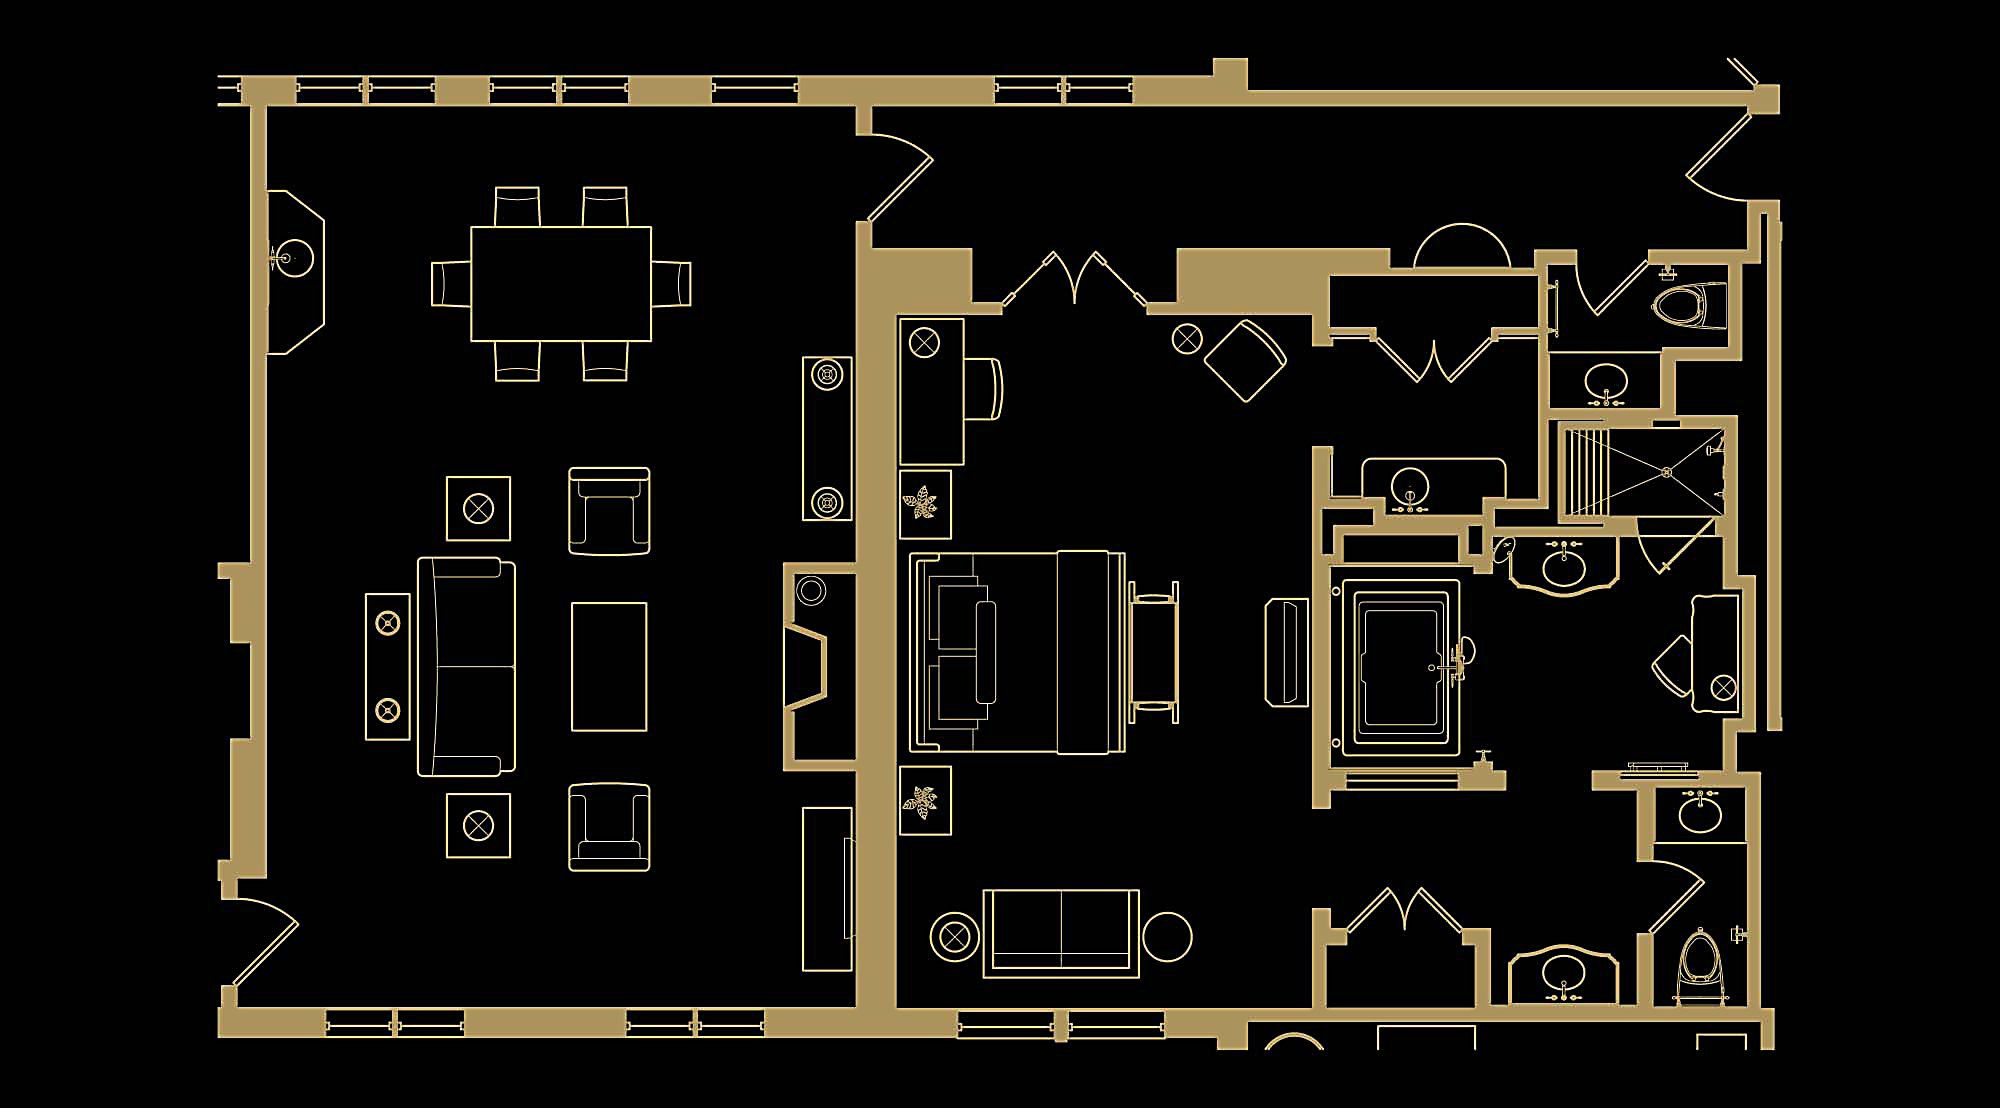 Presidential Floor plan